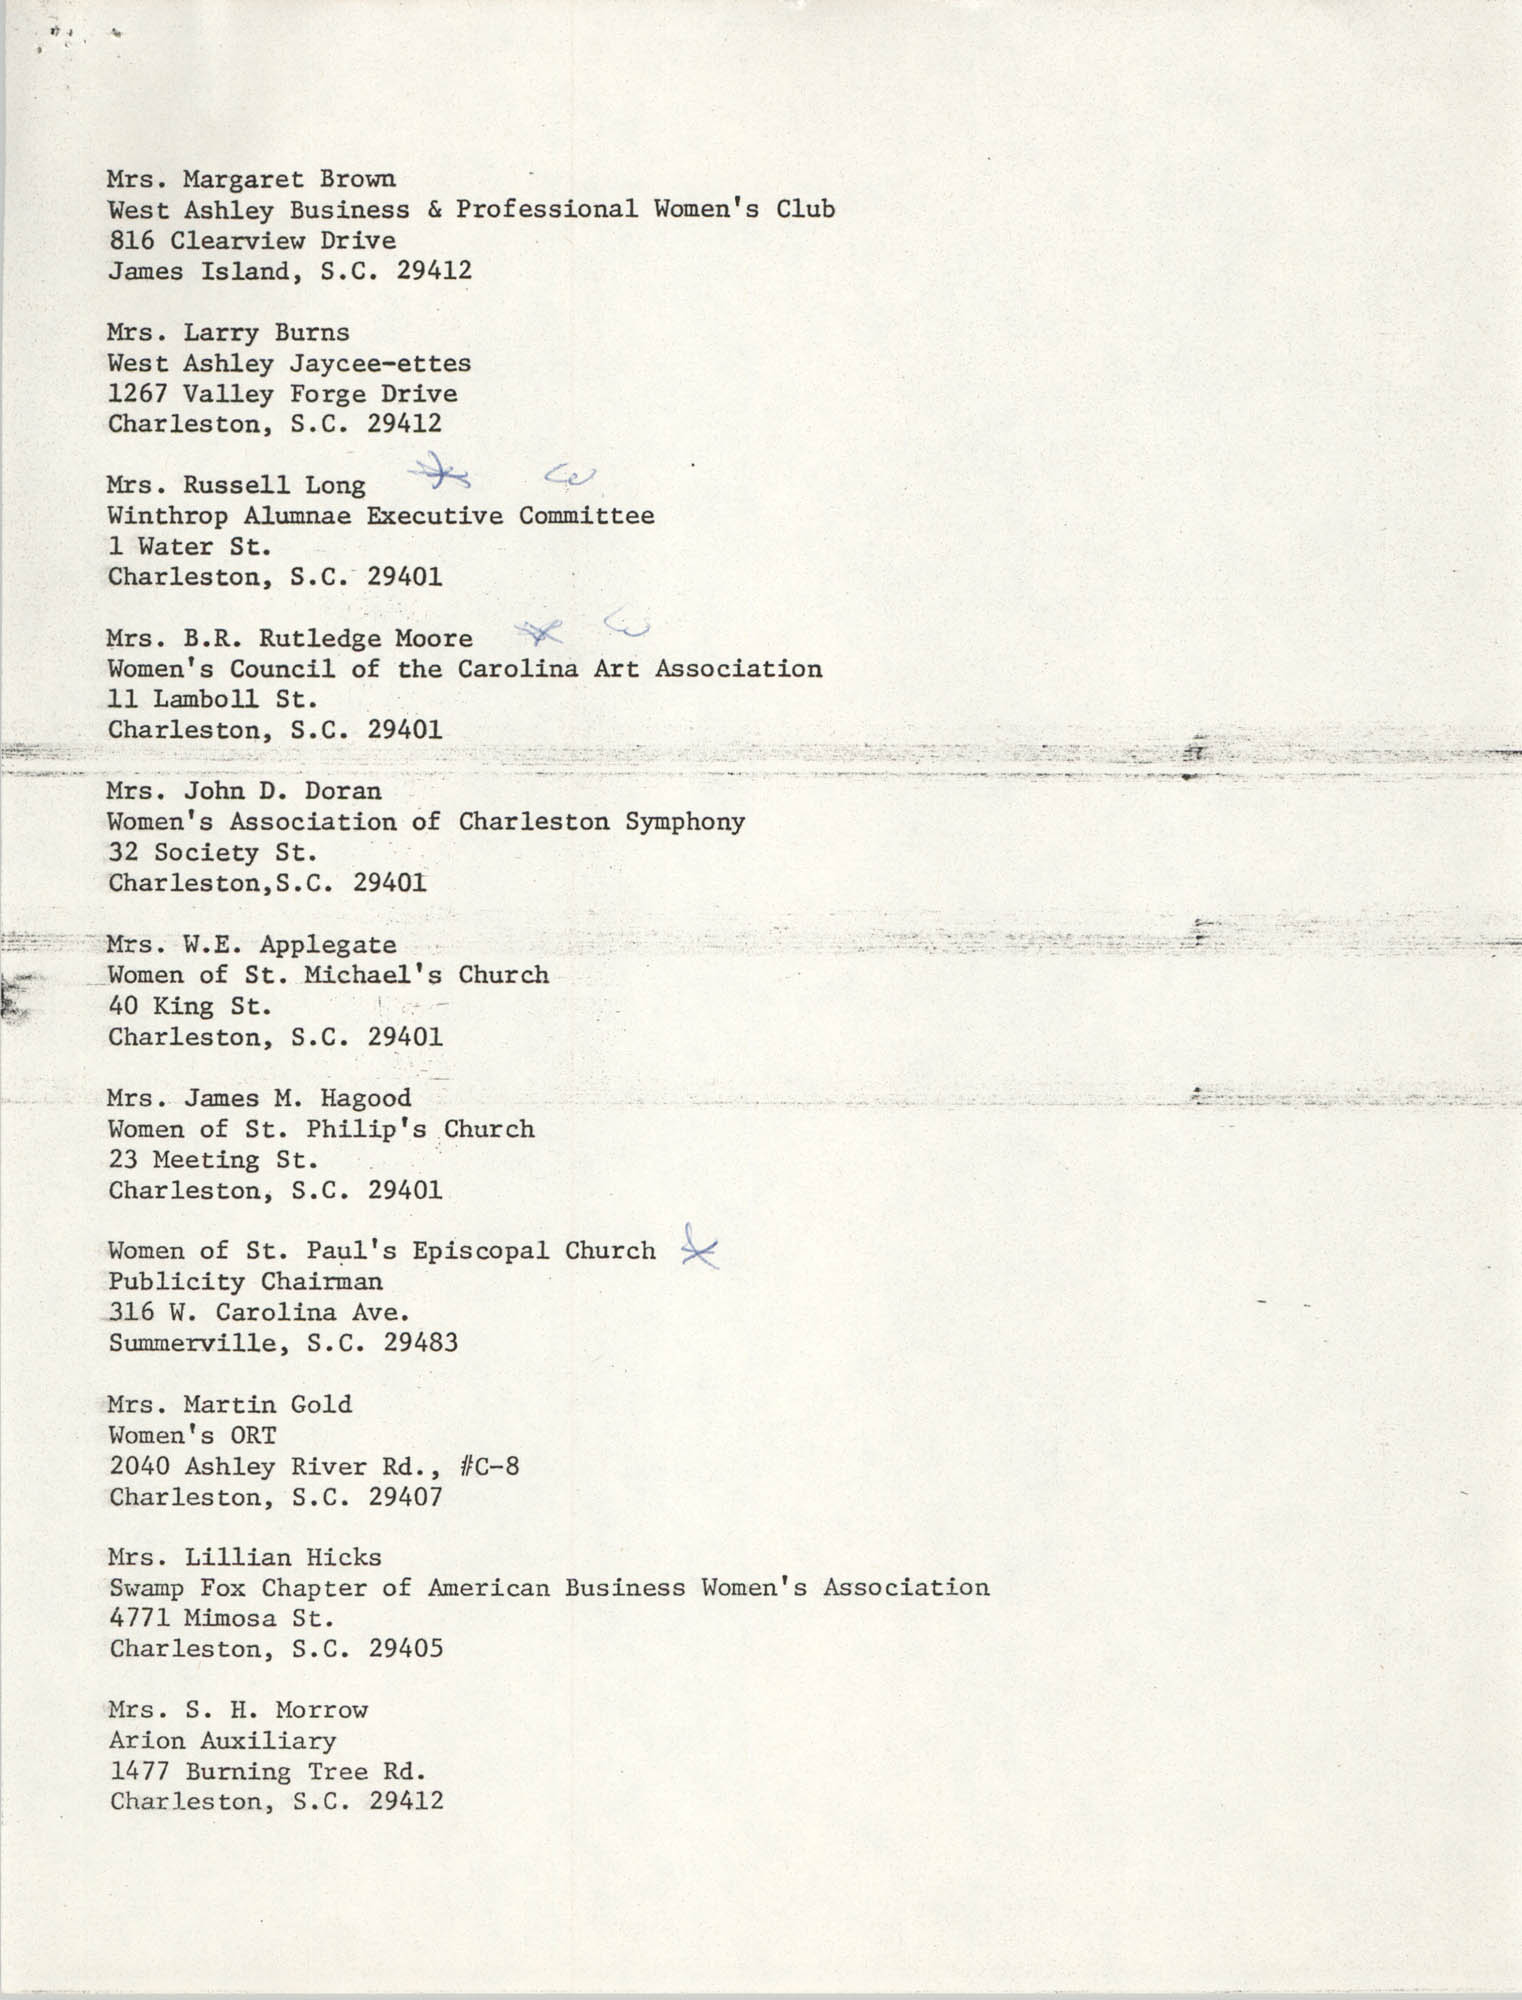 Memorandum, July 18, 1979, Page 7